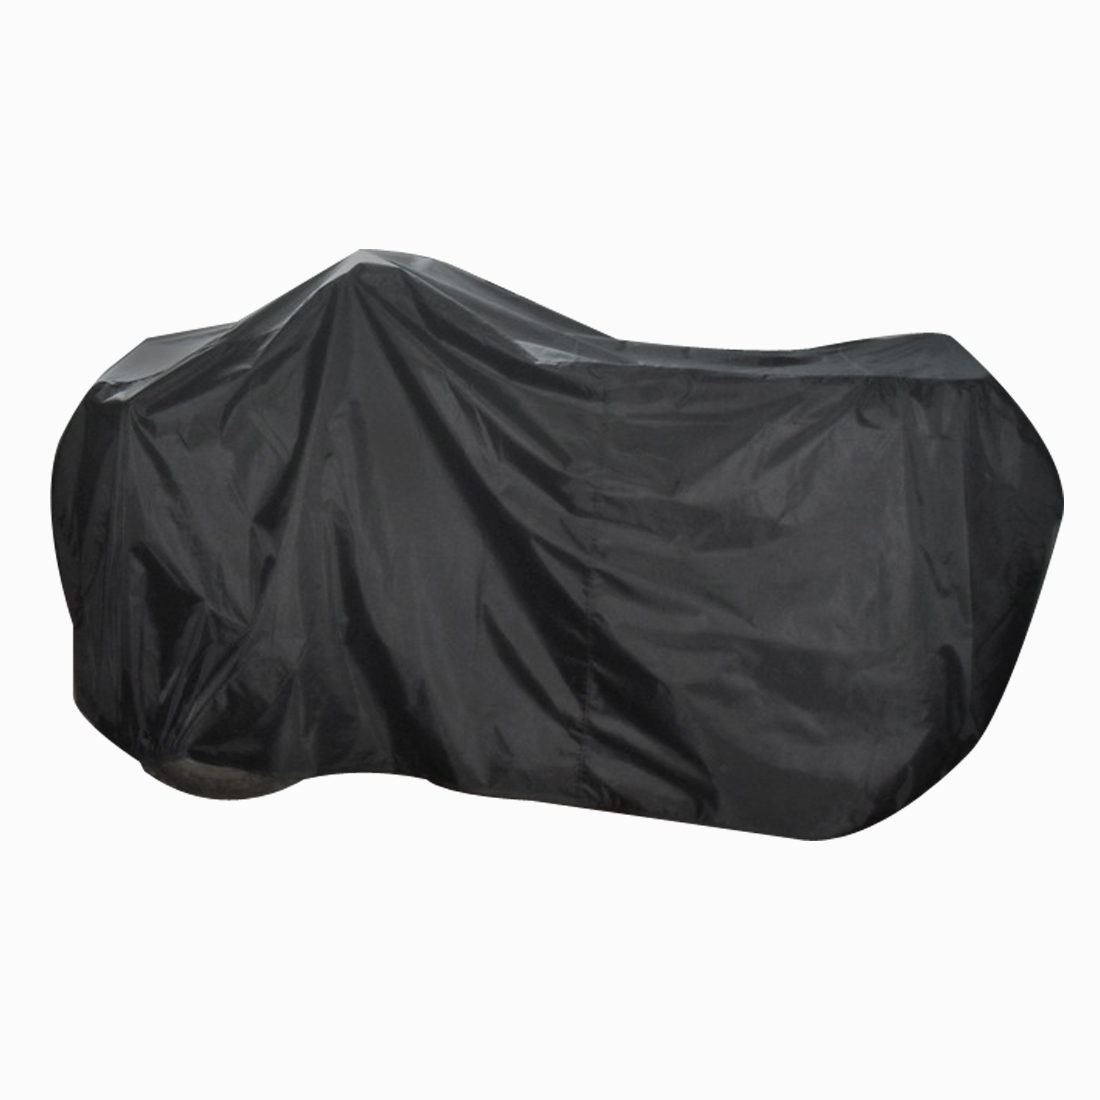 Black Waterproof ATV Cover Universal for Polaris Honda Yamaha Can-Am Suzuki